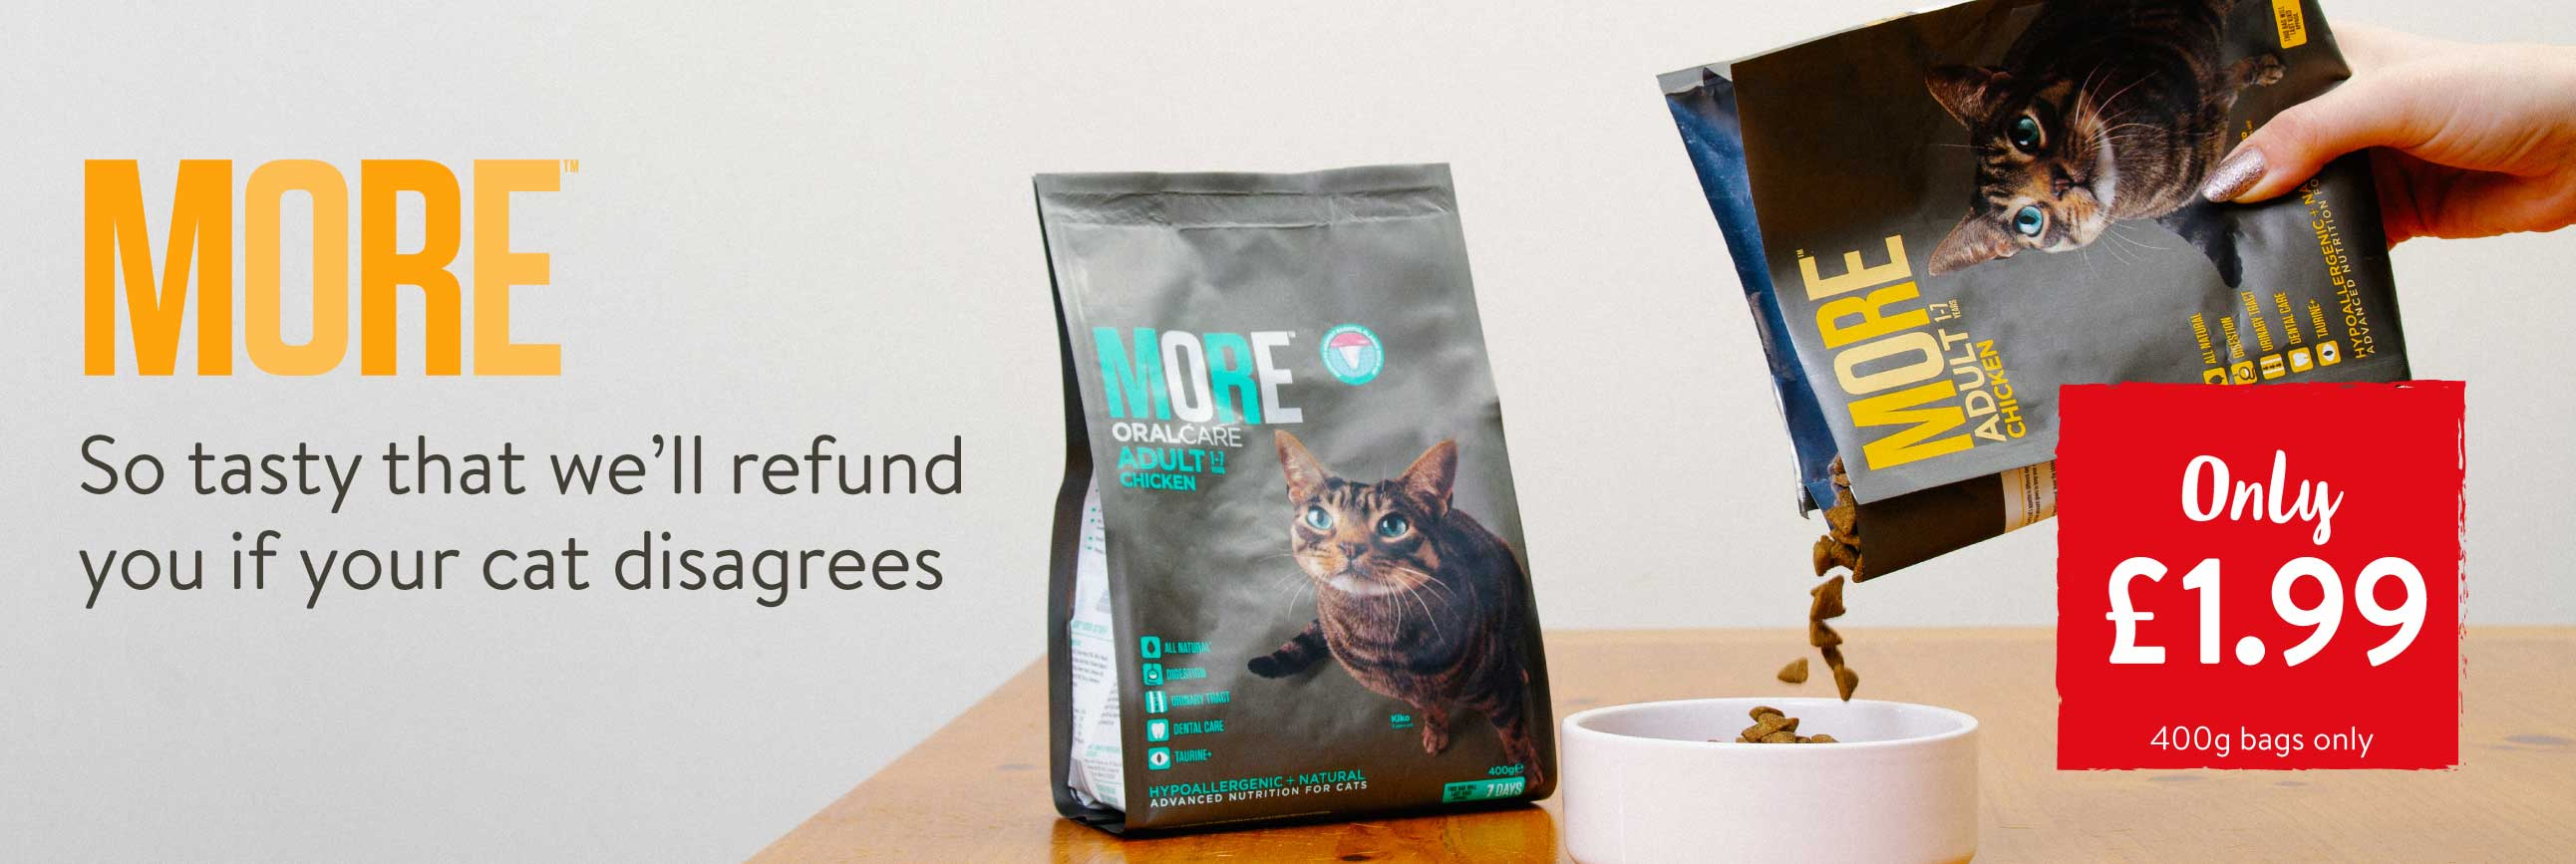 More. So tasty that we'll refund you if your cat disagrees. Only £1.99